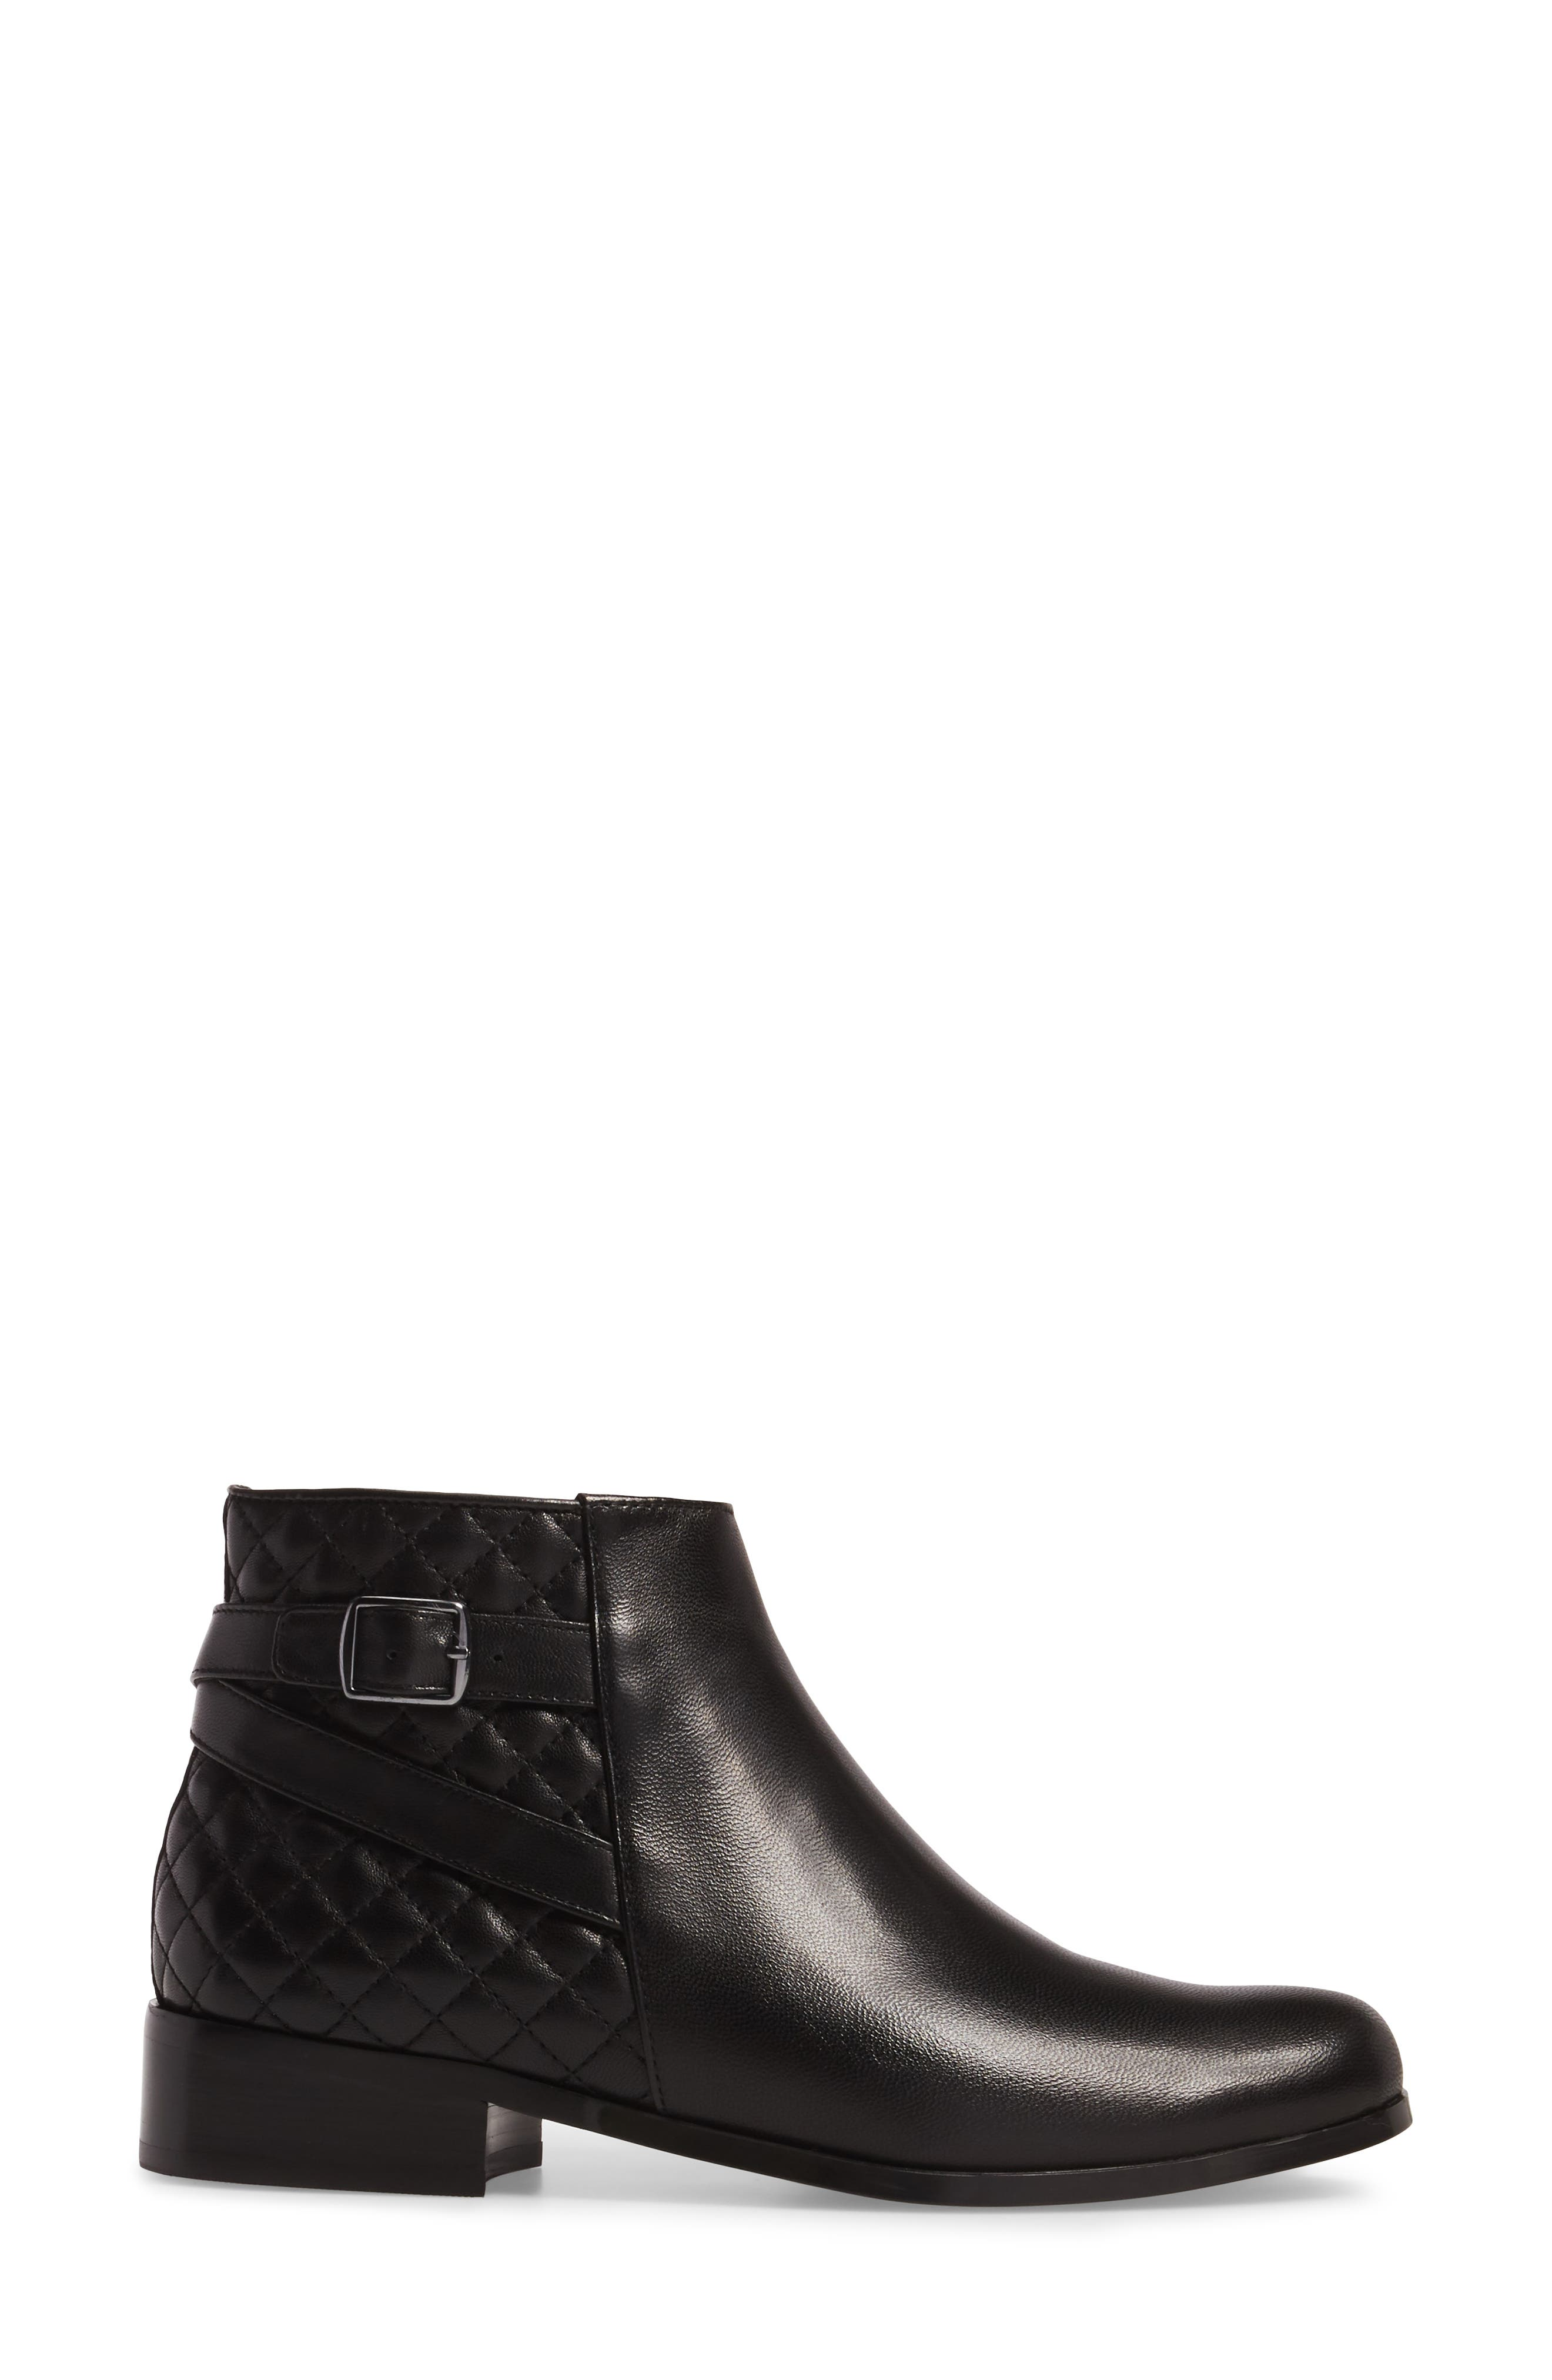 Reanne Buckle Bootie,                             Alternate thumbnail 3, color,                             Black Leather